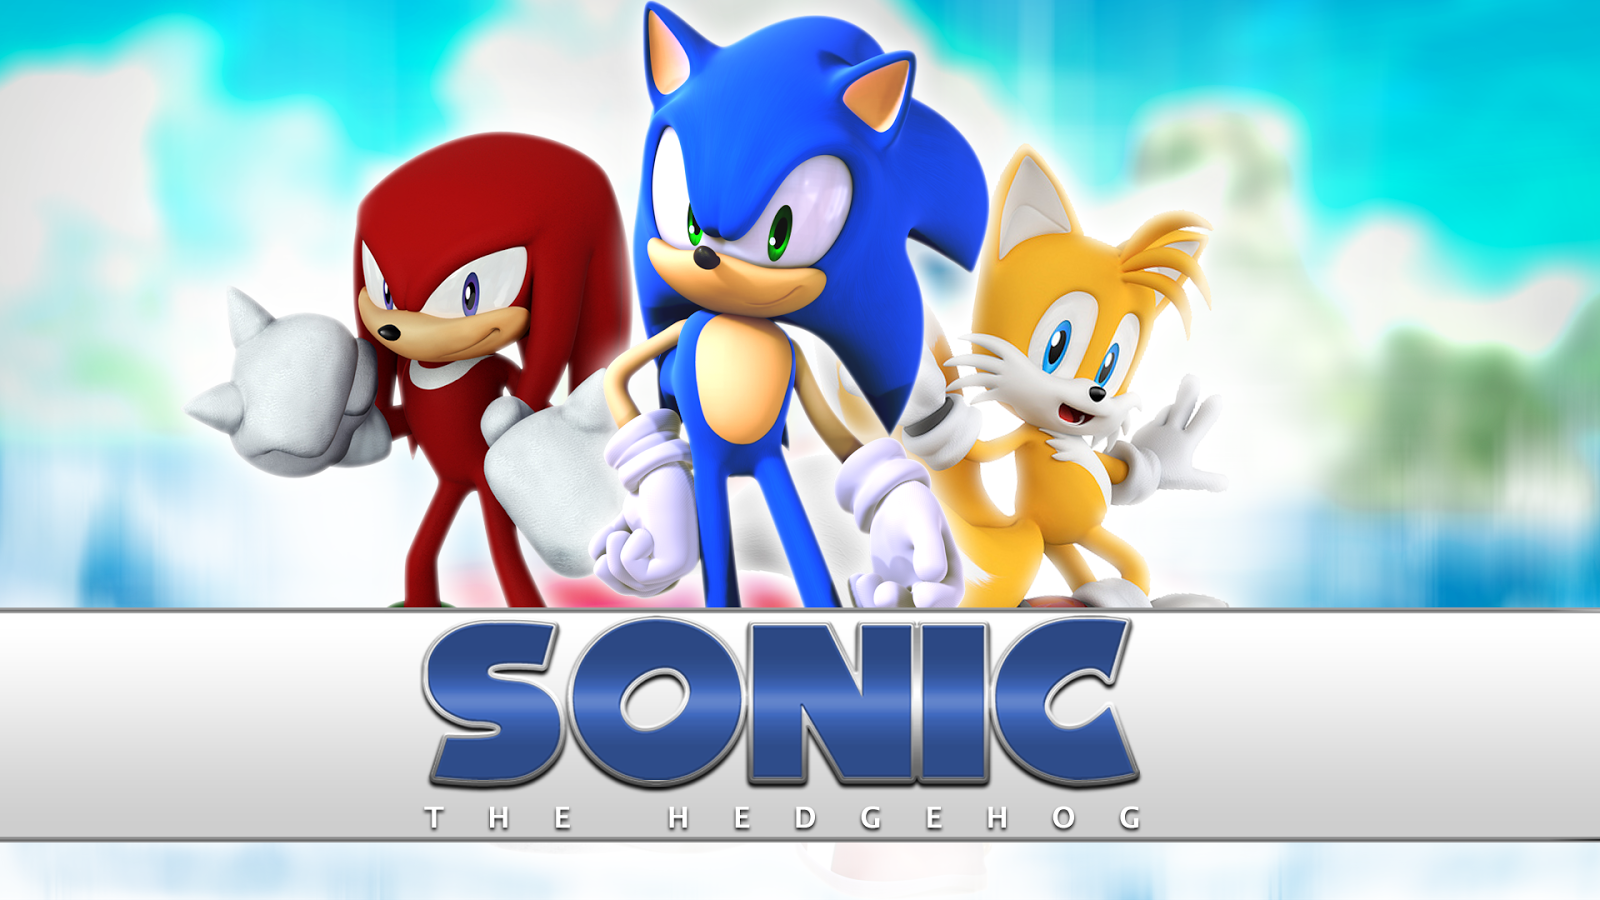 Sonic The Hedgehog Wallpaper HD